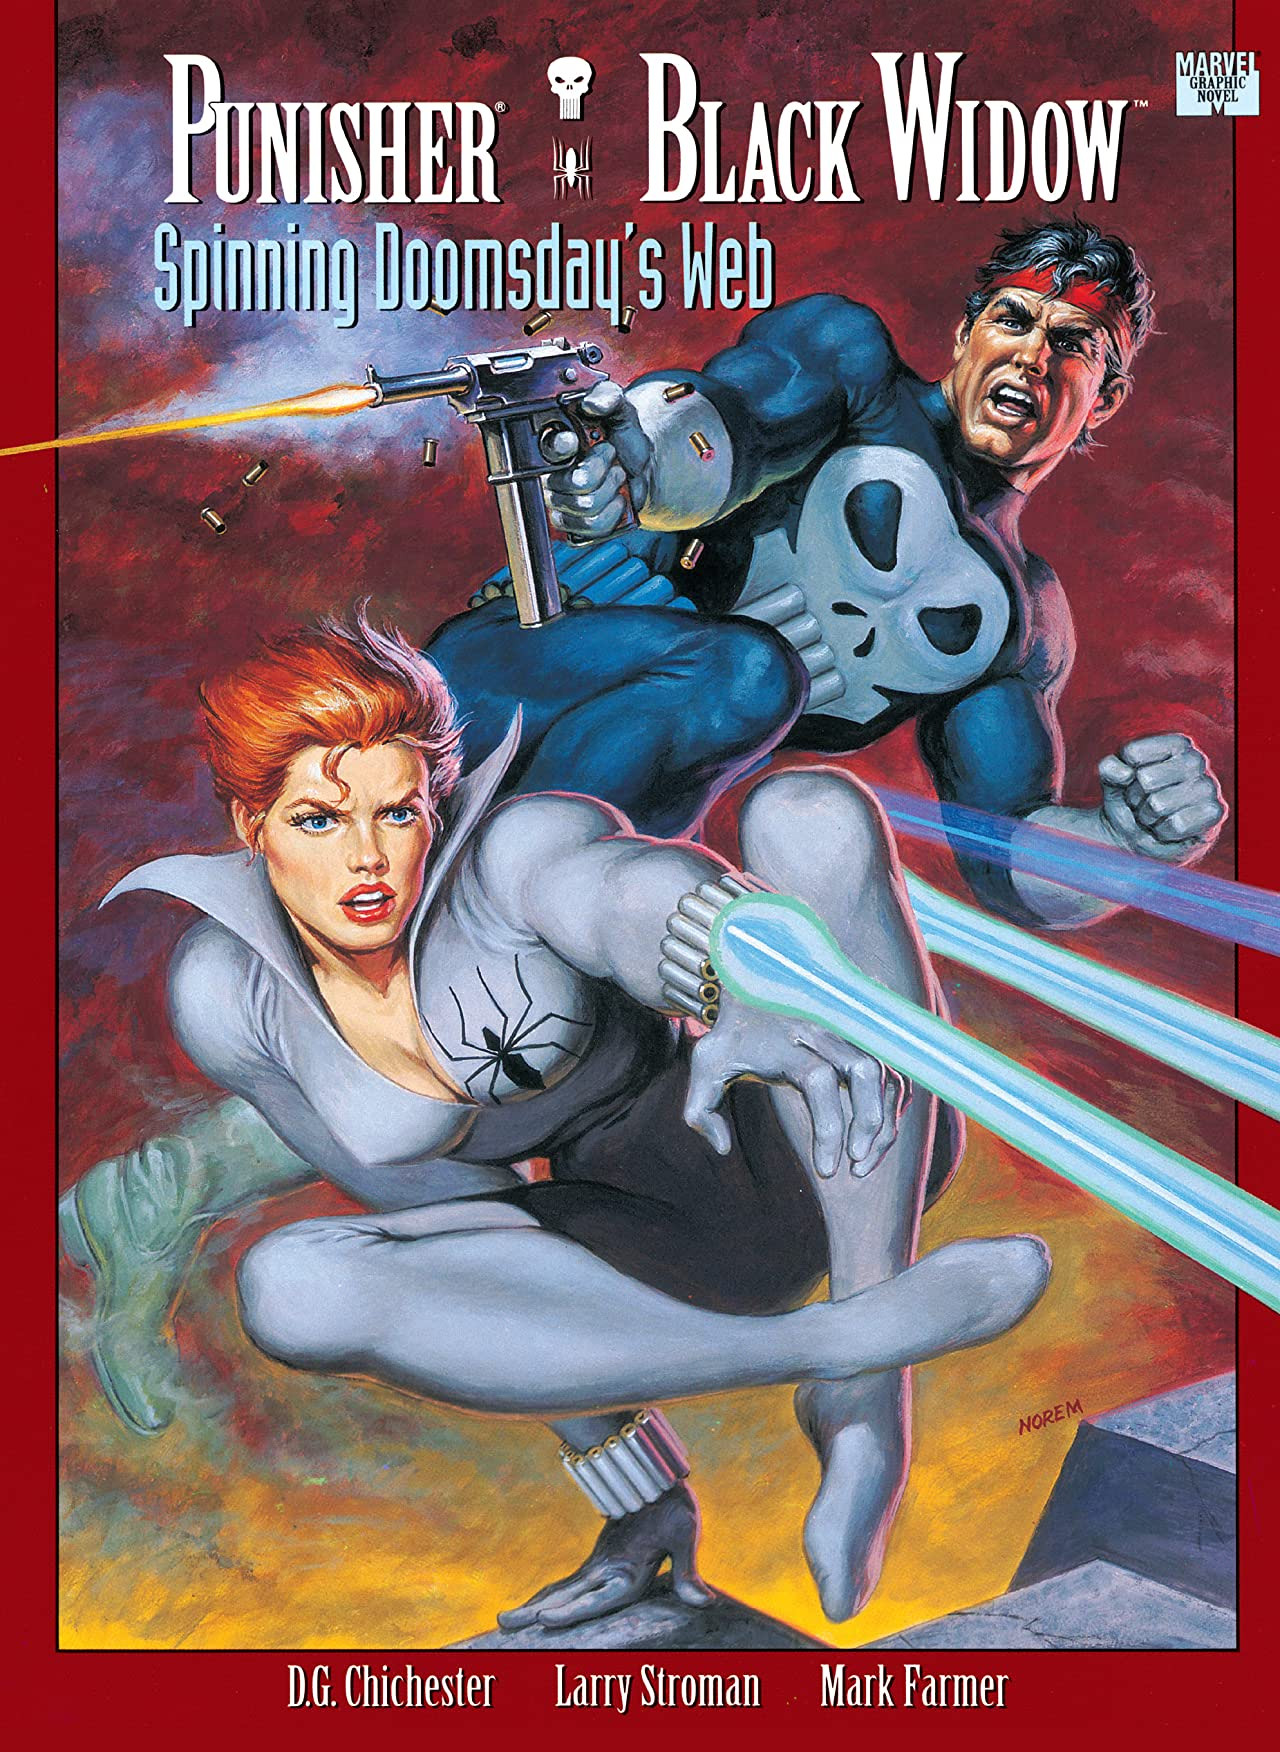 Punisher/Black Widow: Spinning Doomsday's Web Vol 1